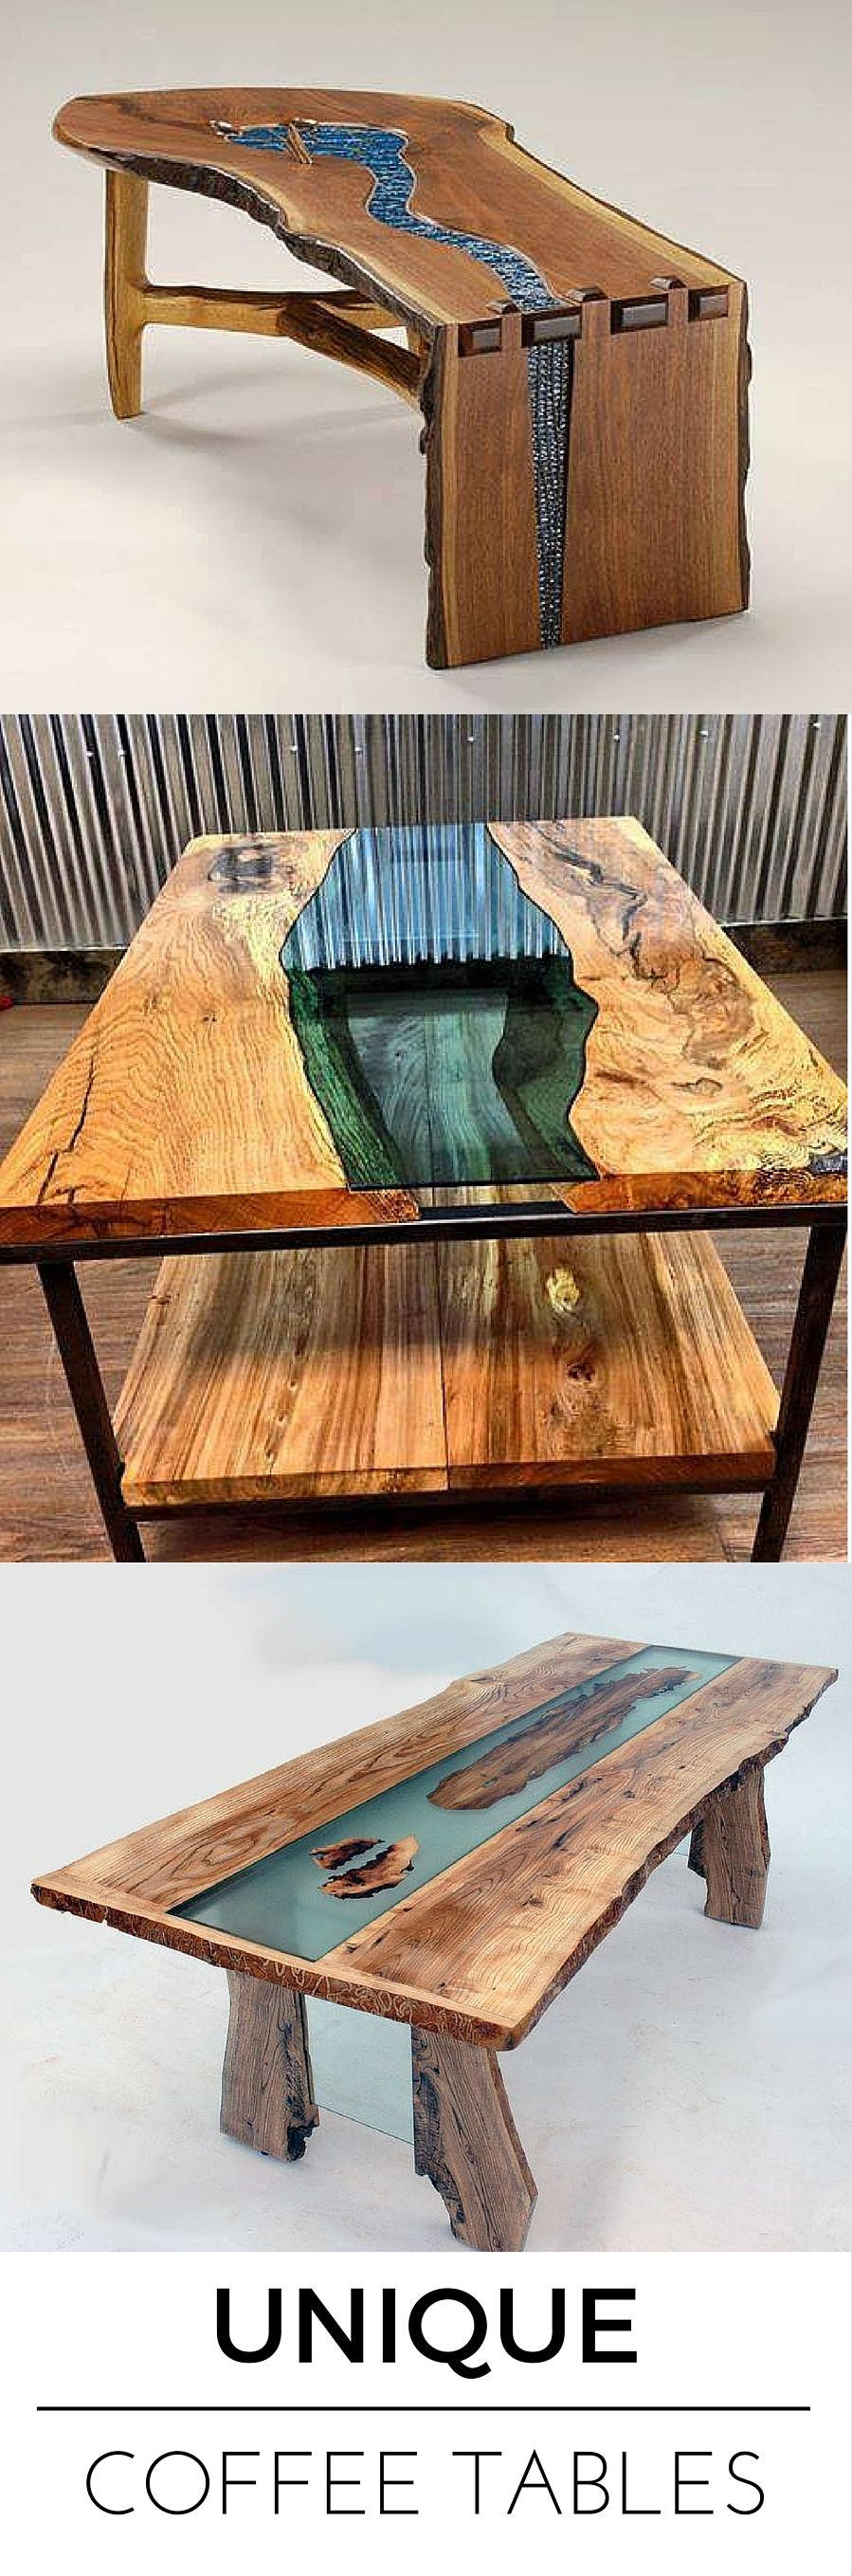 More Ideas Below Diy Wooden Coffee Table Square Crate Ideas Rustic Coffee Table With Small Unique Coffee Table Design Wooden Coffee Table Rustic Coffee Tables